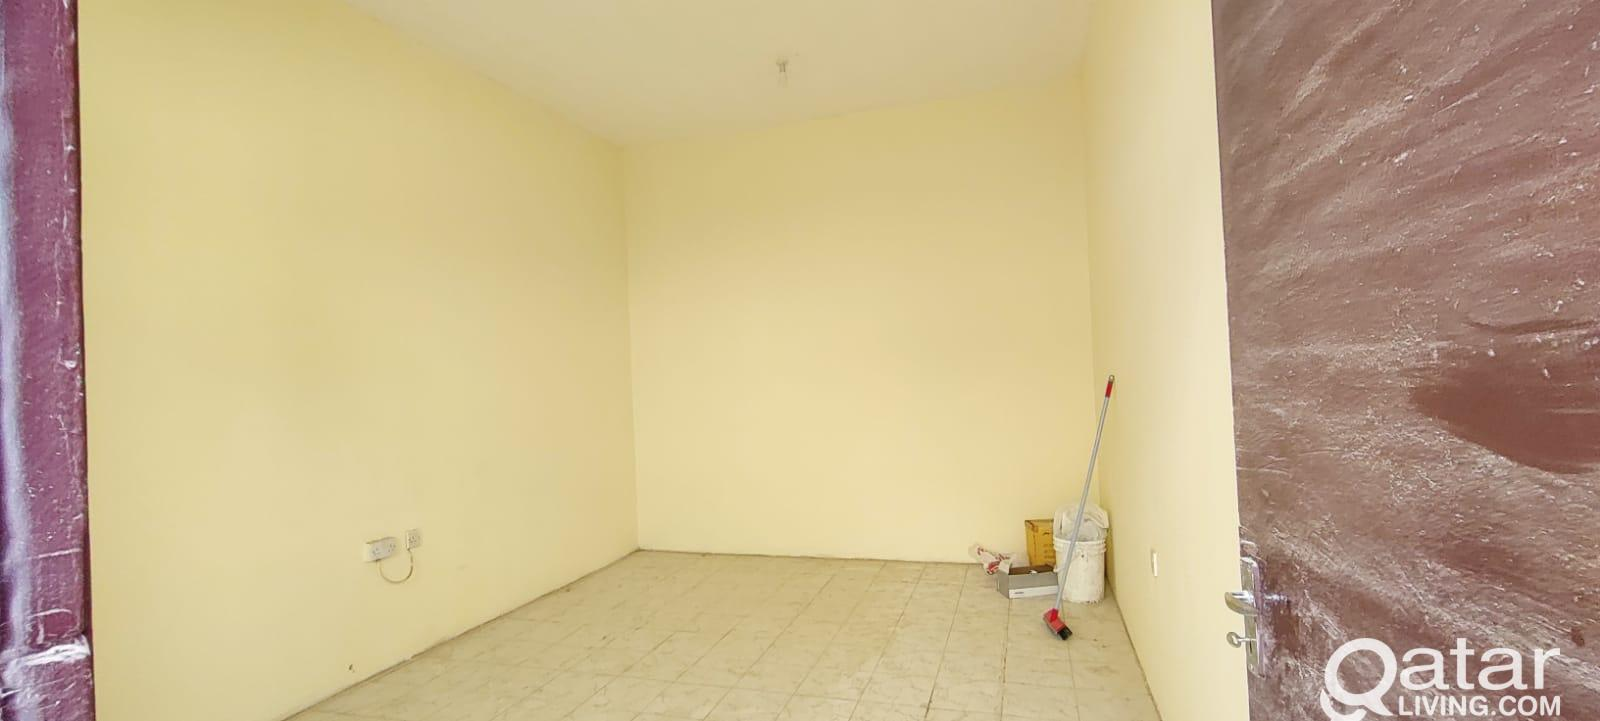 29 Room For Rent - Separate Labor Camp Building